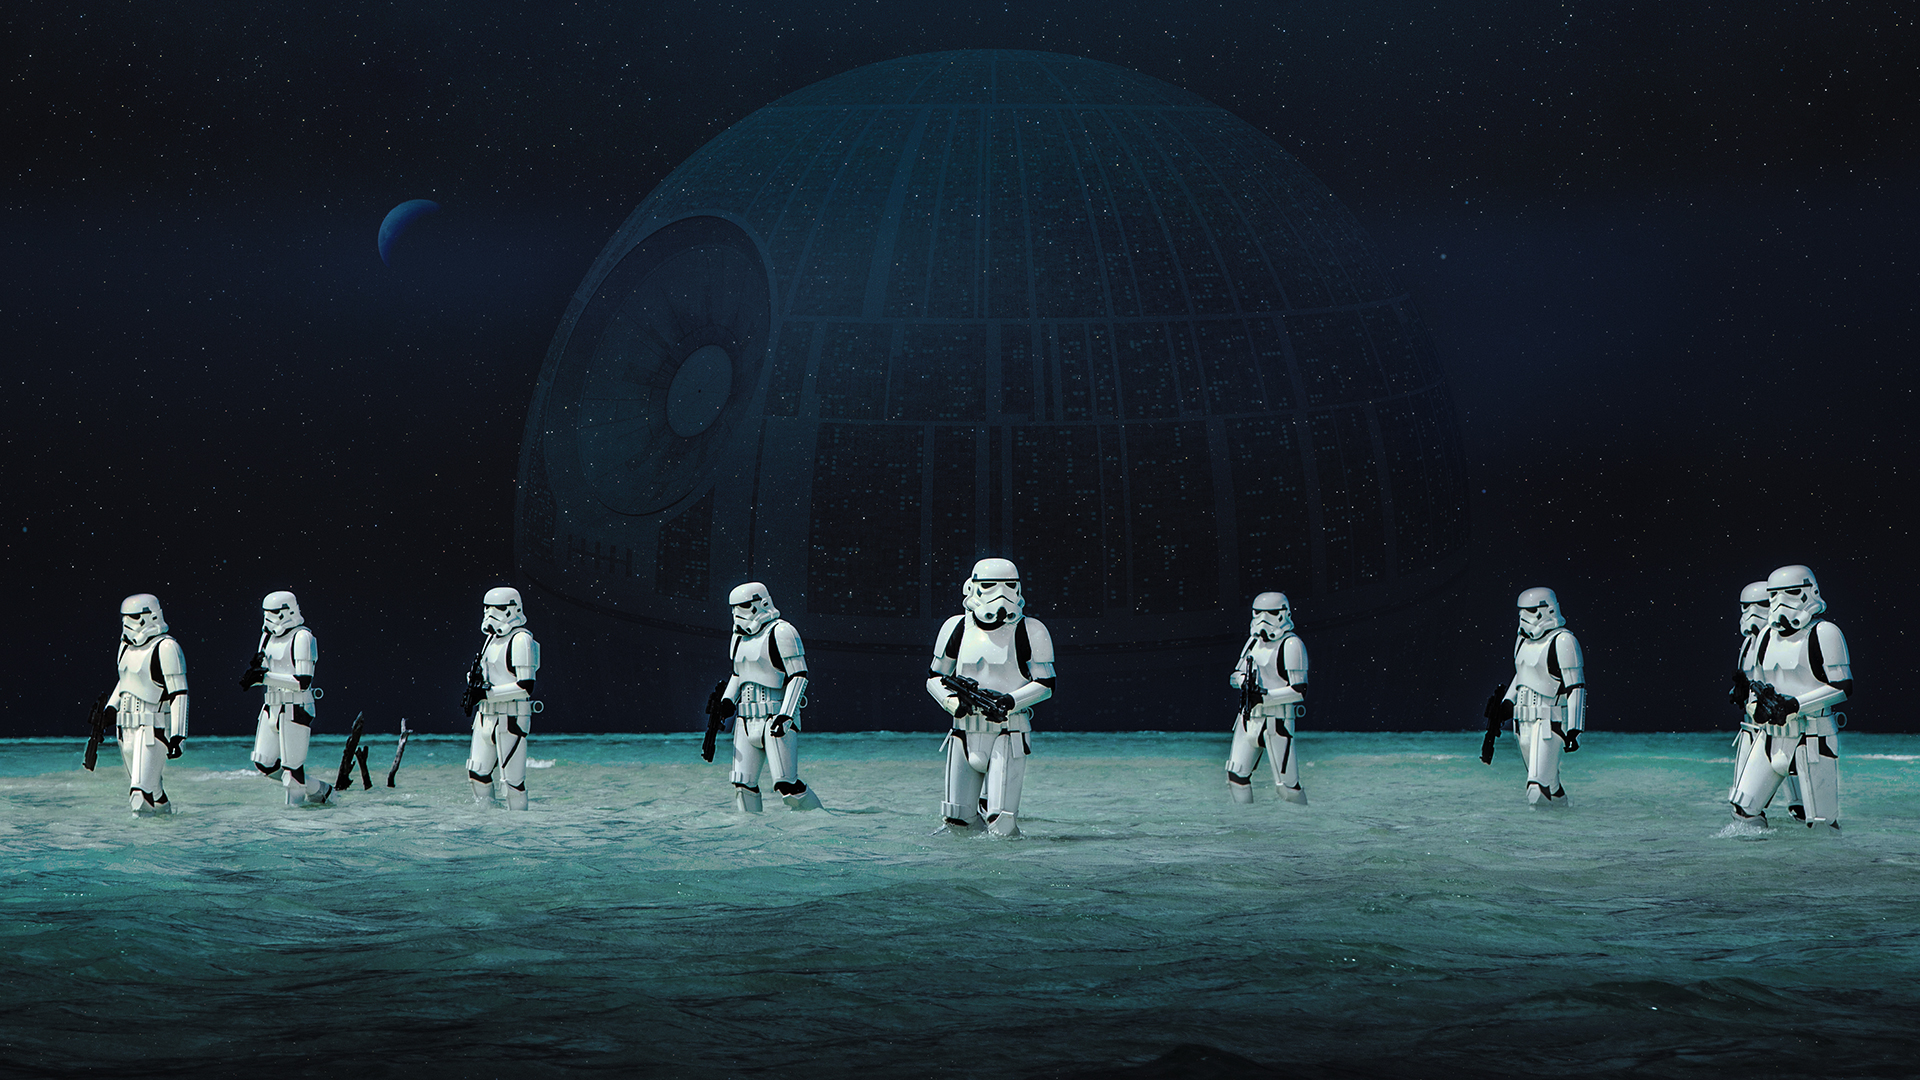 Star Wars Rogue One Wallpaper: Free Star Wars: Rogue One Chromebook Wallpaper Ready For